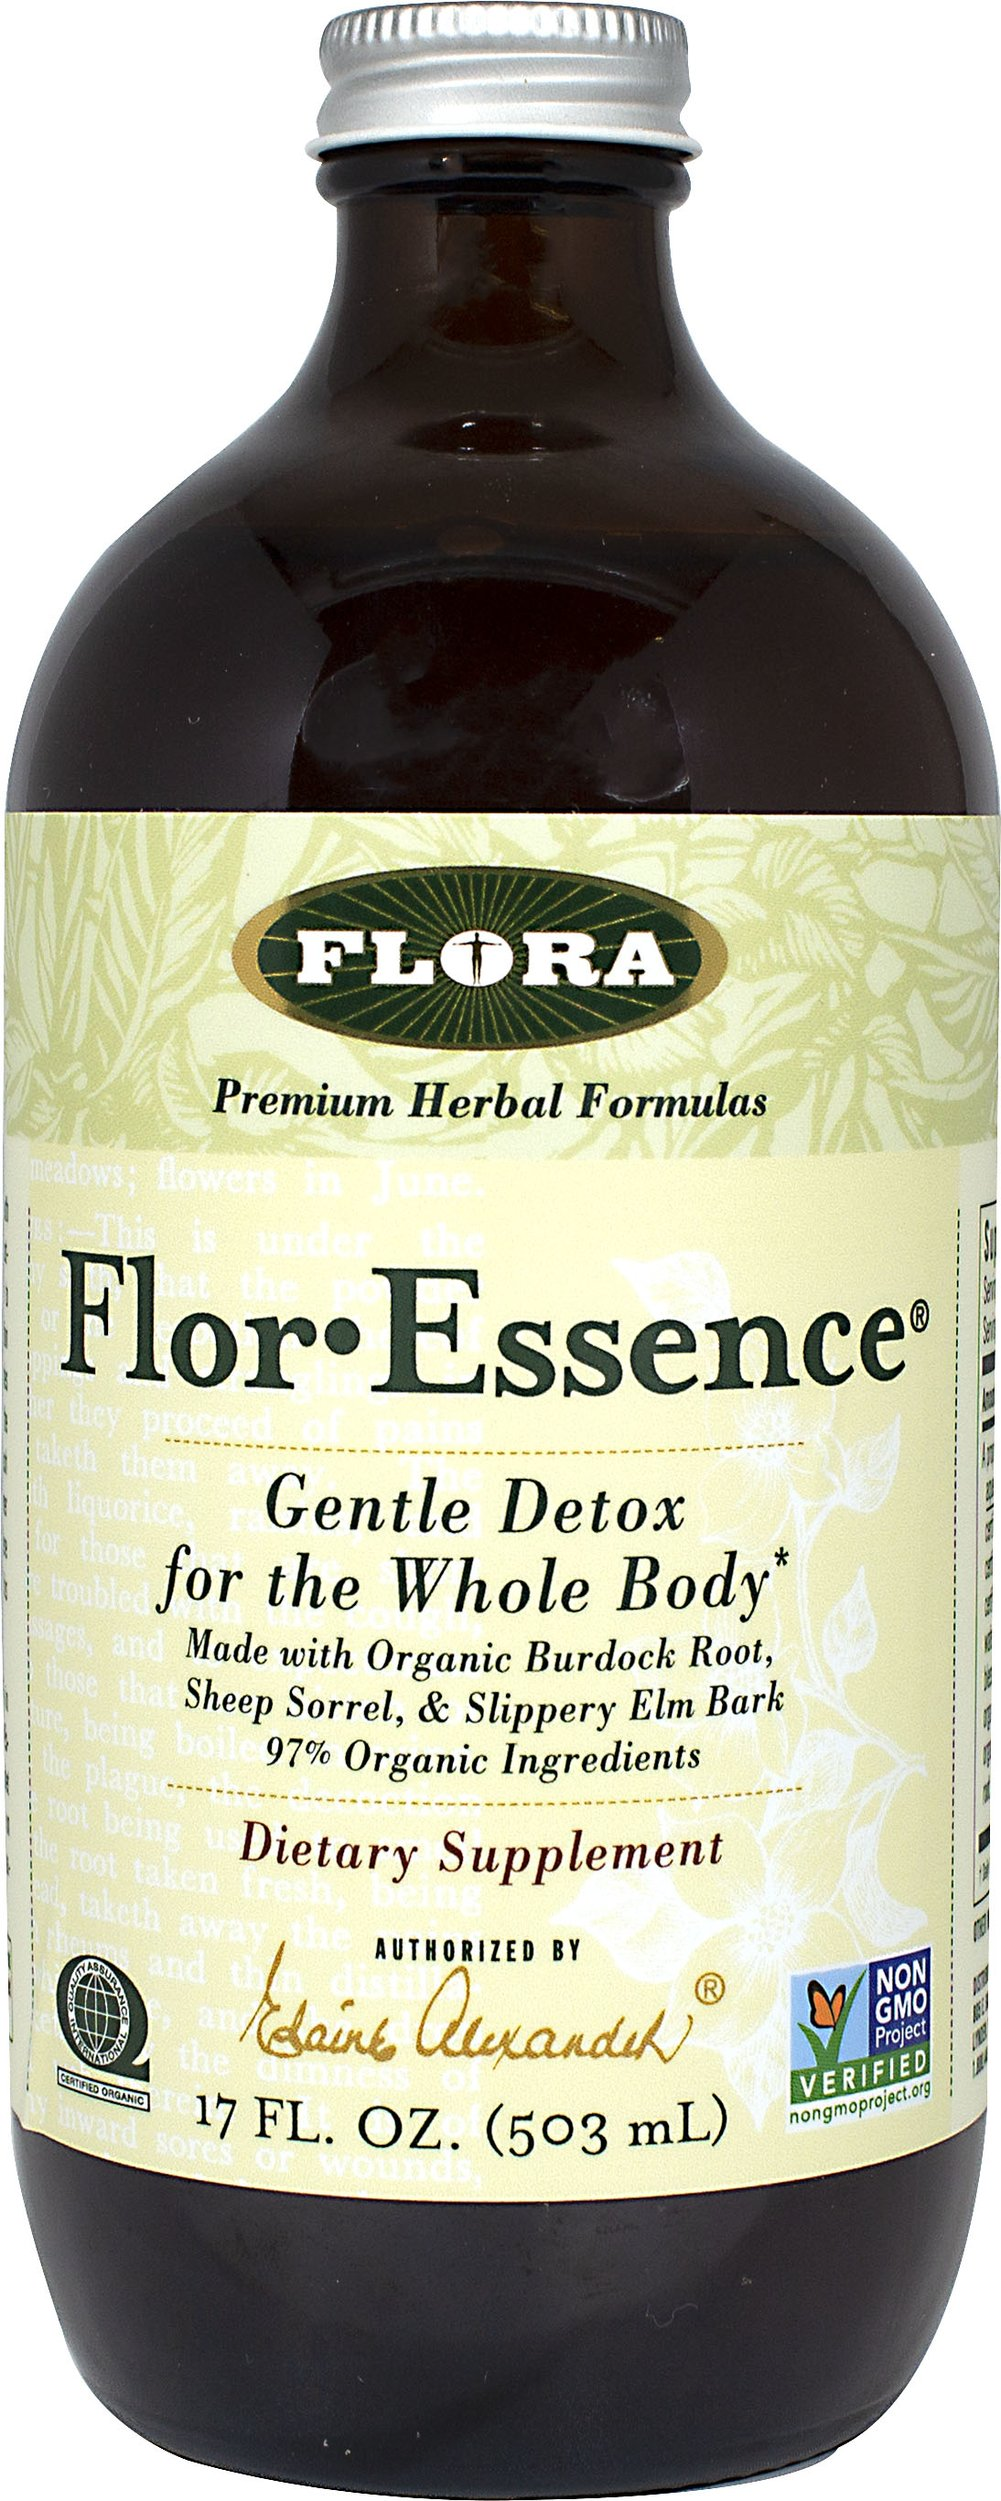 Flor-Essence Liquid <p><strong>From the Manufacturer's Label: </strong></p><p>Flor-Essence is a purification tea that supports the whole body in it's elimination process. The traditional herbal blend is designed to work synergistically as an internal cleanser.</p> 17 fl oz Liquid  $29.19